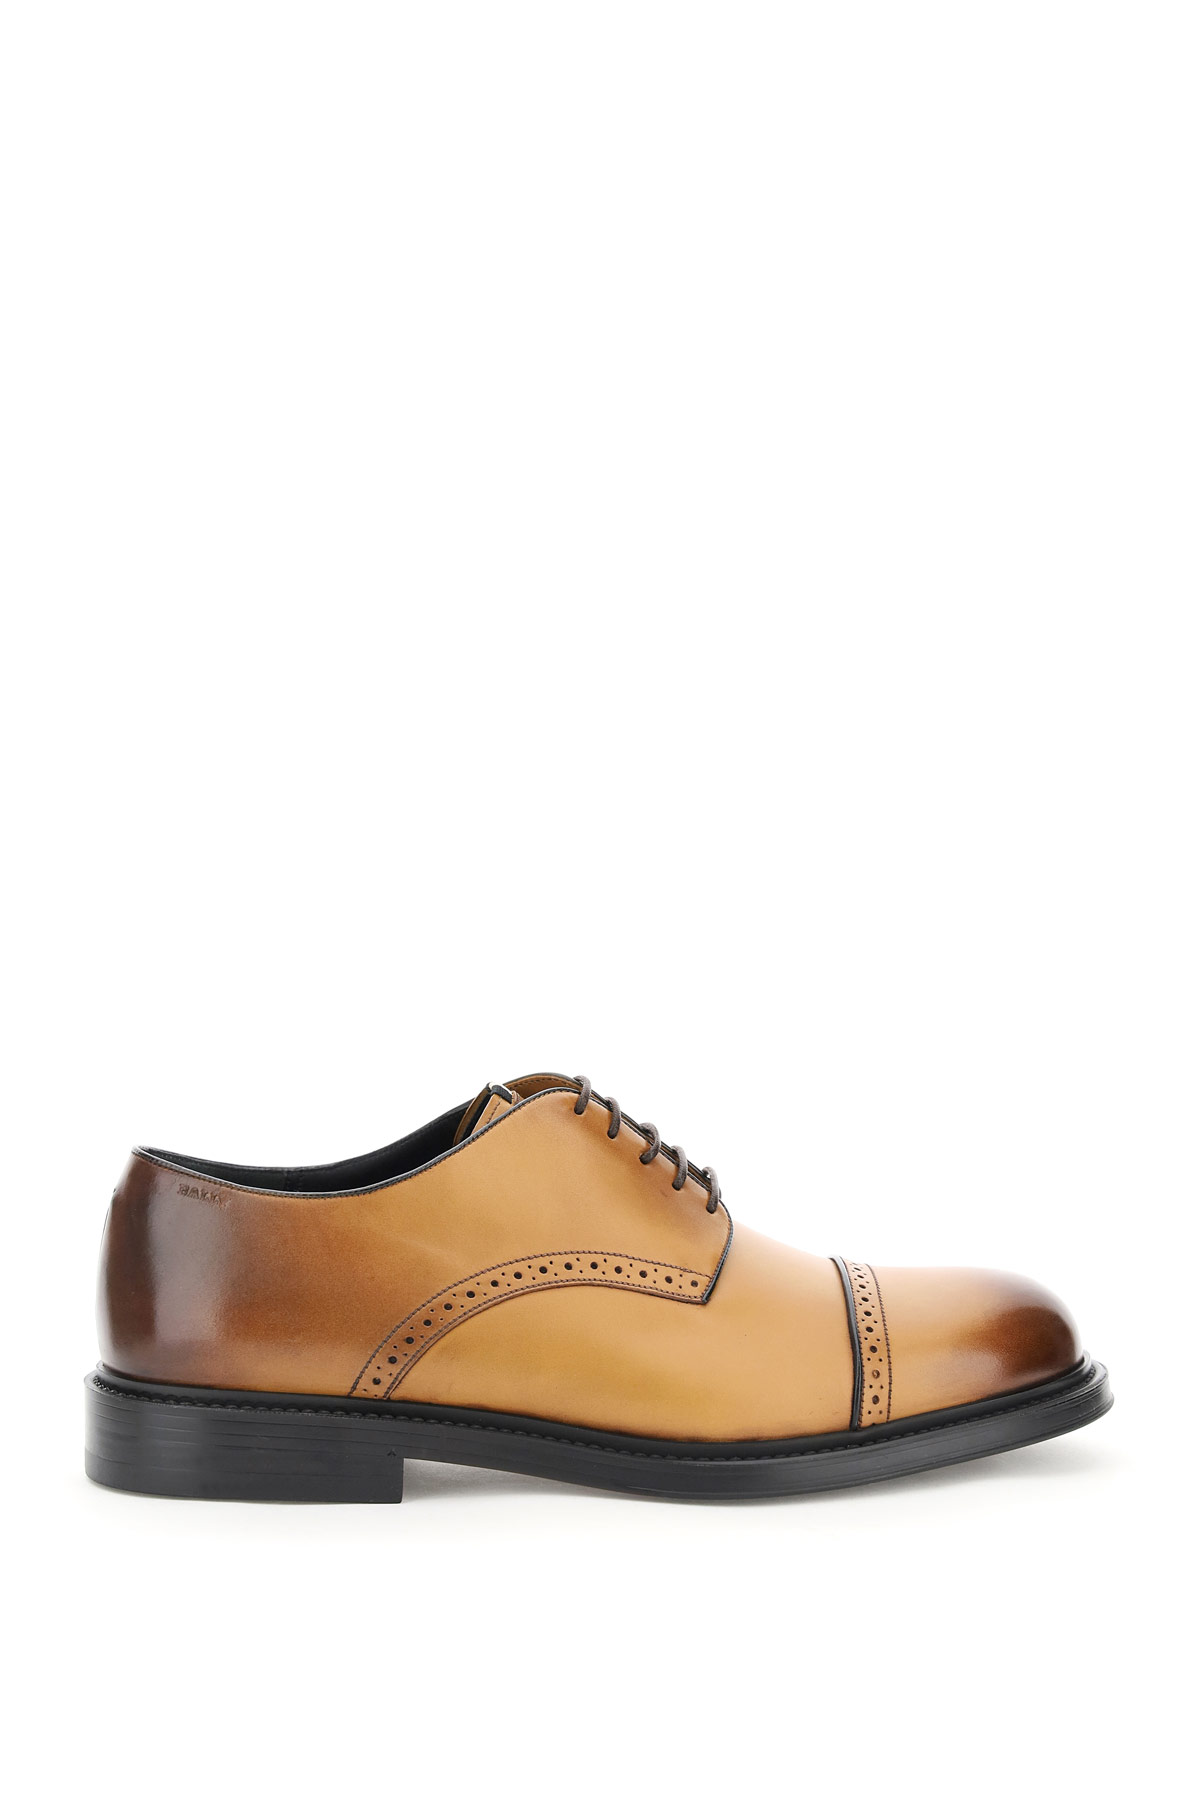 BALLY NIDAL LACE-UP SHOES 5 Brown, Beige Leather